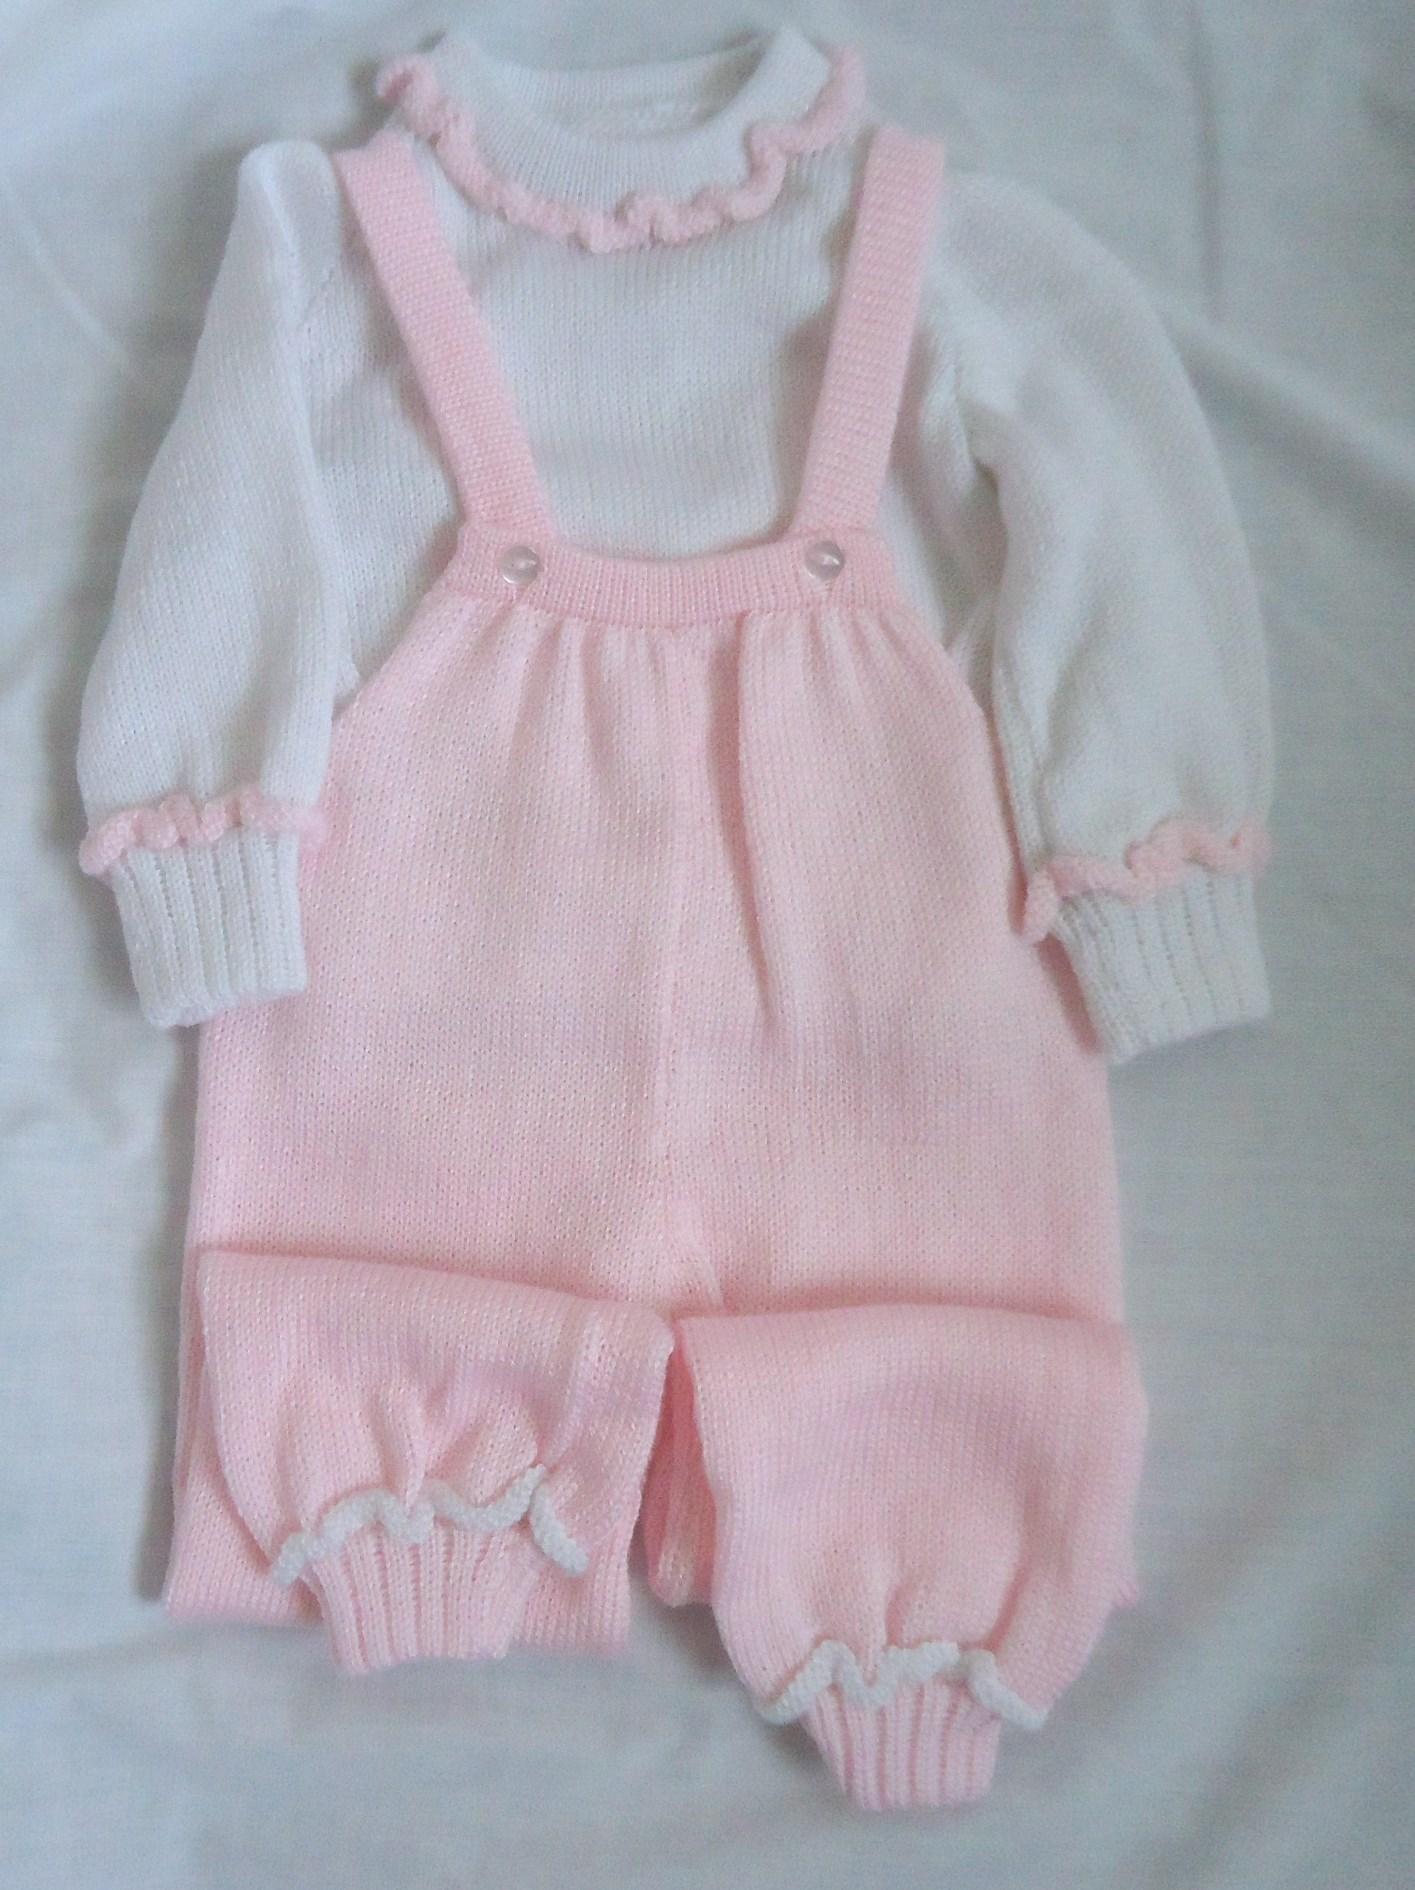 Knitted Baby Clothes Krissys Kustom Knits